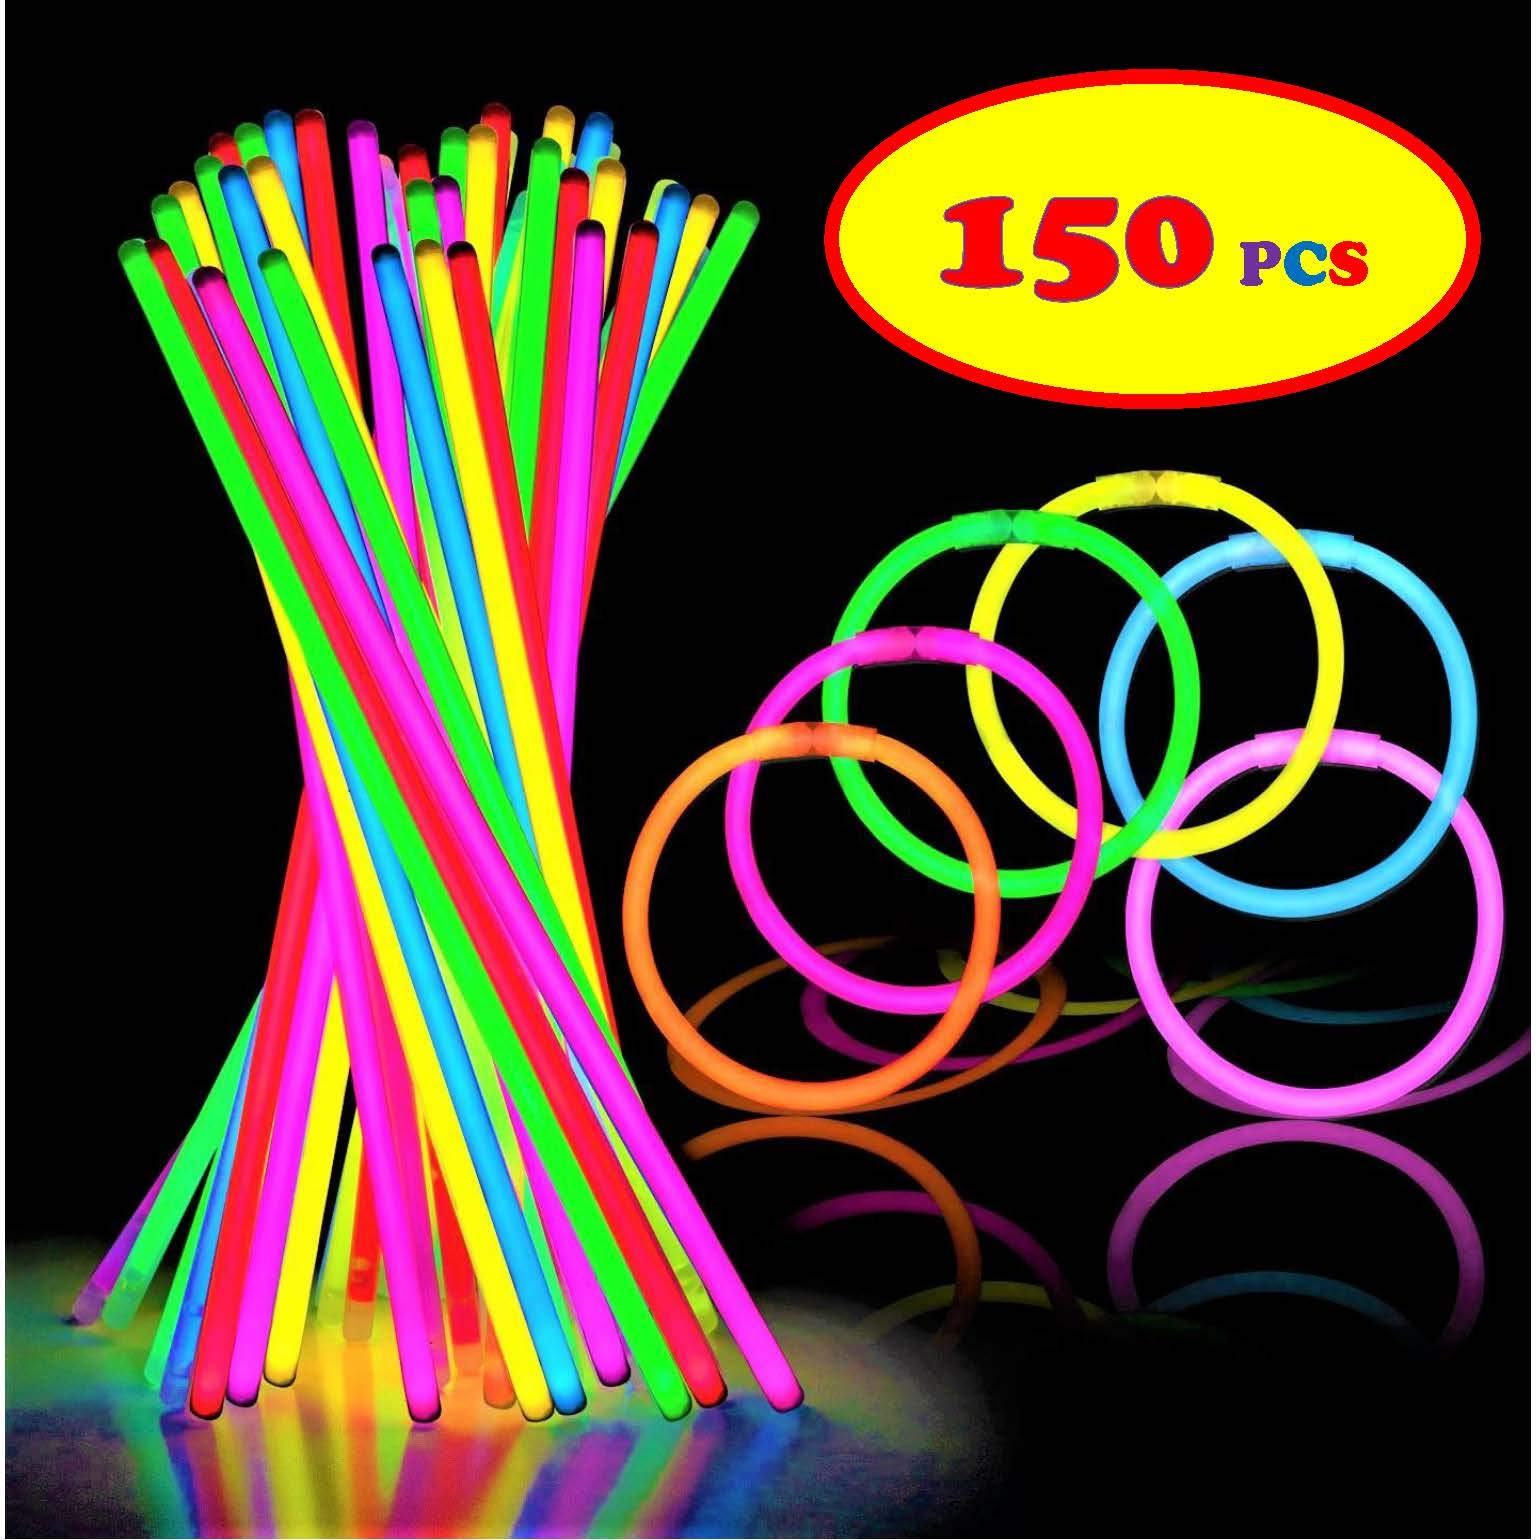 150 Ultra Bright Glow Sticks - Total 300 Pcs - 8'' Necklaces And Bracelets Glow Stick With Connectors - Bulk Party Pack Ultra Bright Glowsticks - 10 Hour Duration - Mixed Colors In 3 Tubes